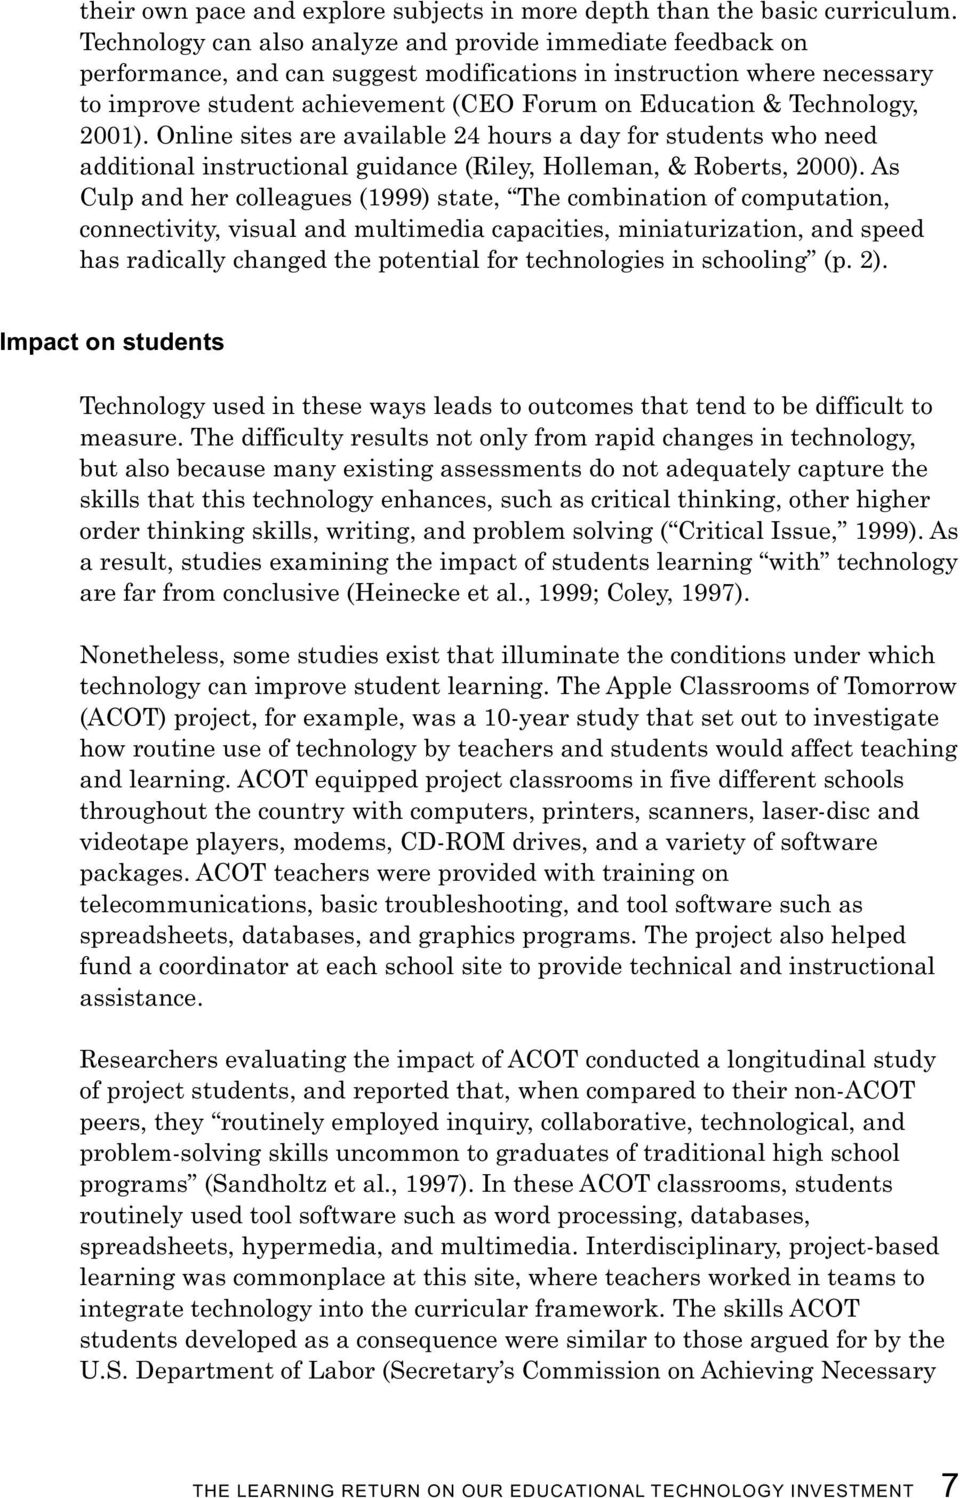 Technology, 2001). Online sites are available 24 hours a day for students who need additional instructional guidance (Riley, Holleman, & Roberts, 2000).